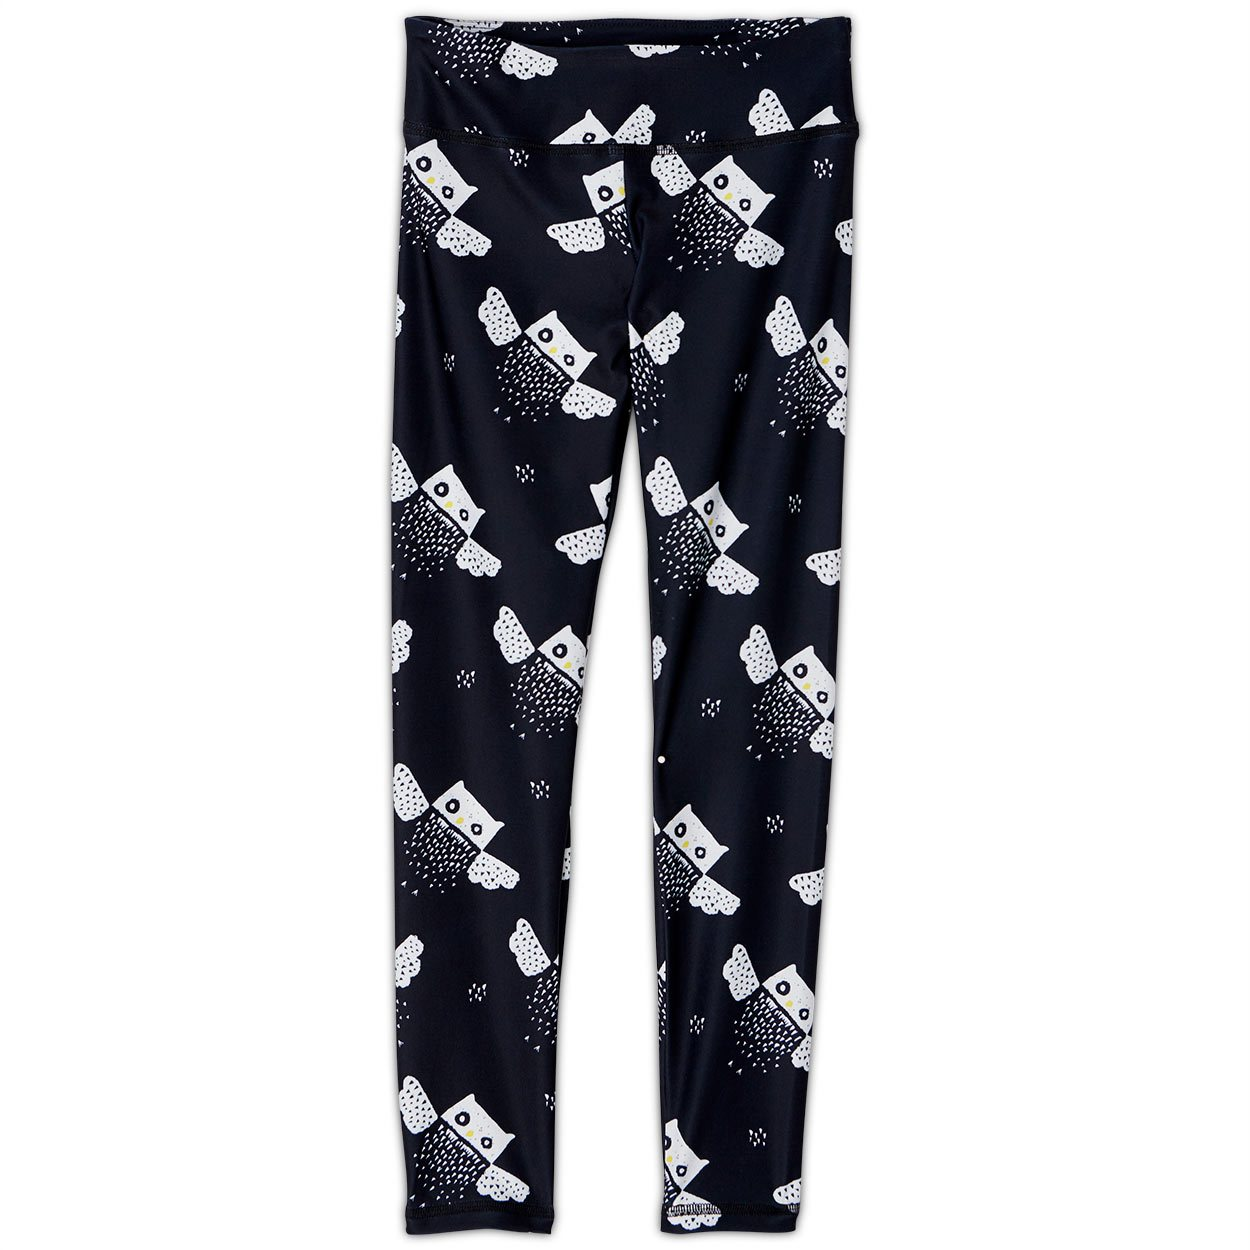 Owls Sunblocker Youth Leggings Upf50 Girls 6 12 Black White Sunpoplife